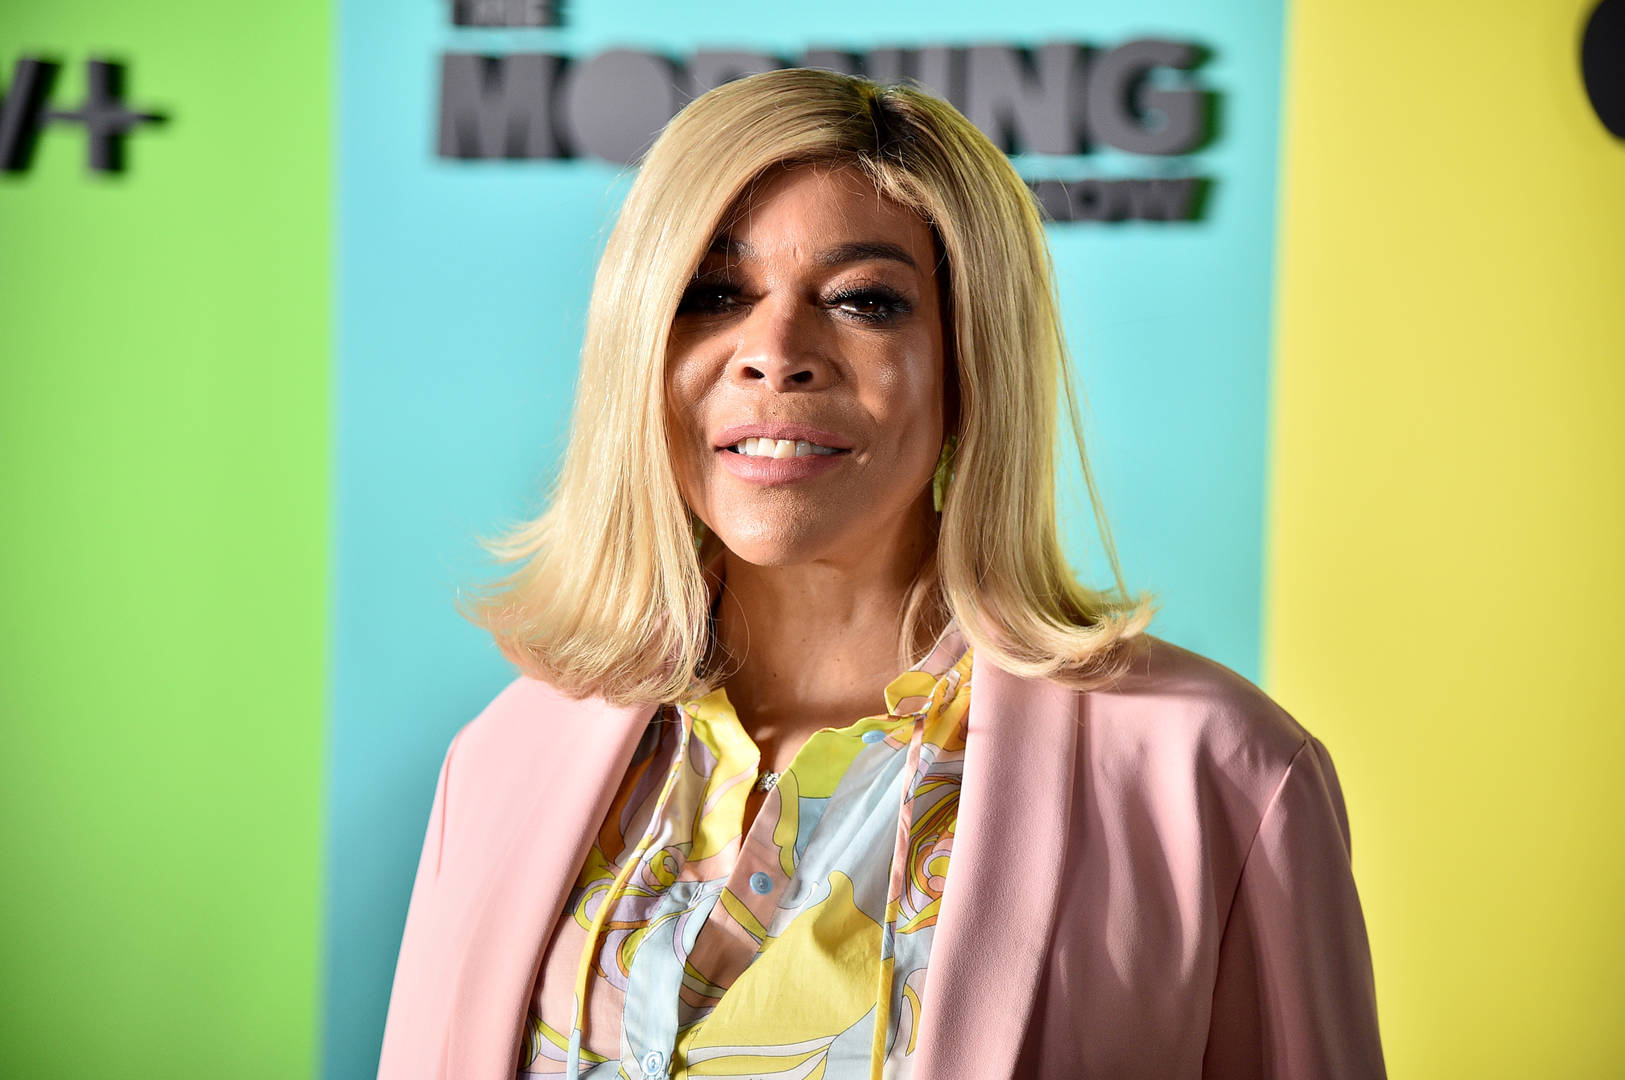 """Wendy Williams attends the Apple TV+'s """"The Morning Show"""" World Premiere at David Geffen Hall on October 28, 2019 in New York City."""